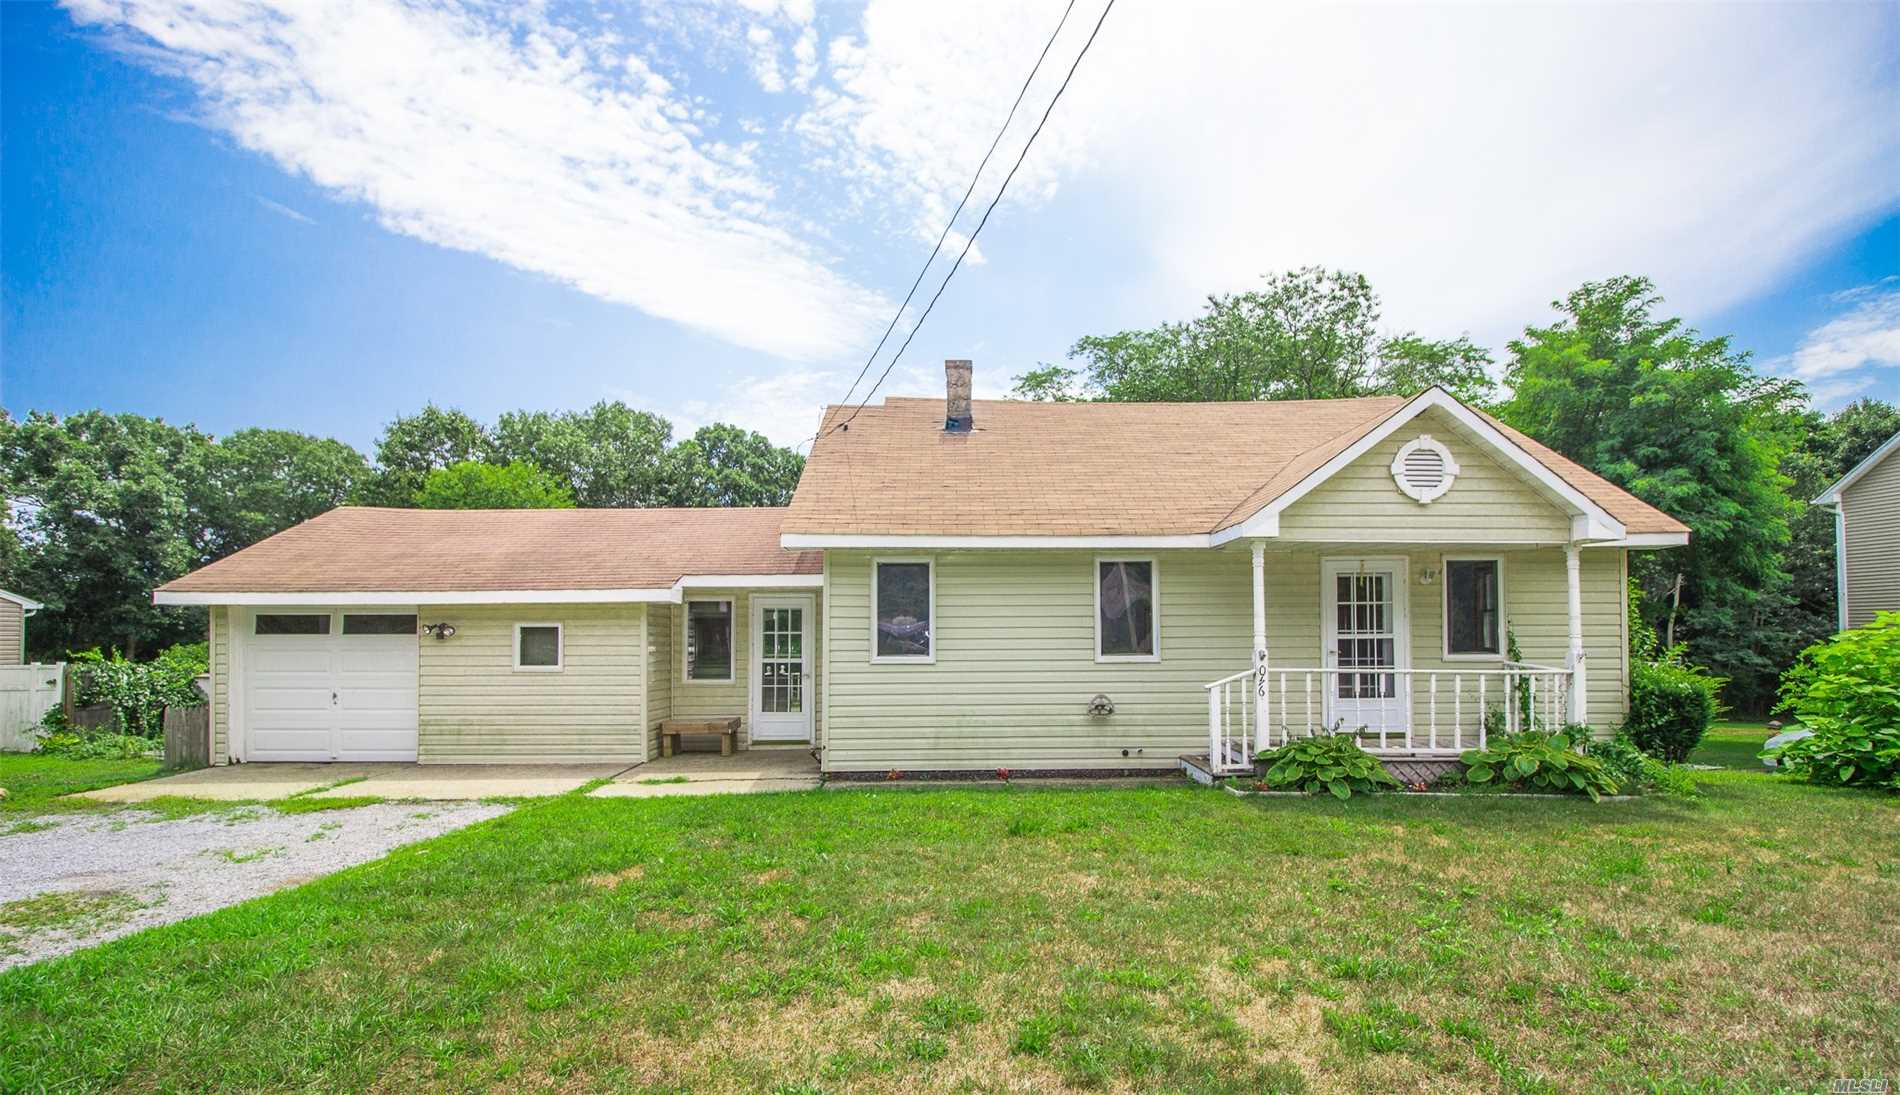 Adorable 3 Bedroom 1 Full Bath Features Eat In Kitchen, Formal Dine, Living Rm, Den, 2 Bedrooms On The Main Flr And 1 Huge Bedroom On The 2nd Floor. Also Features Full Basement And 1 Car Garage. Situated On .68 Of An Acre!. A Little Tlc Needed So So Worth It!